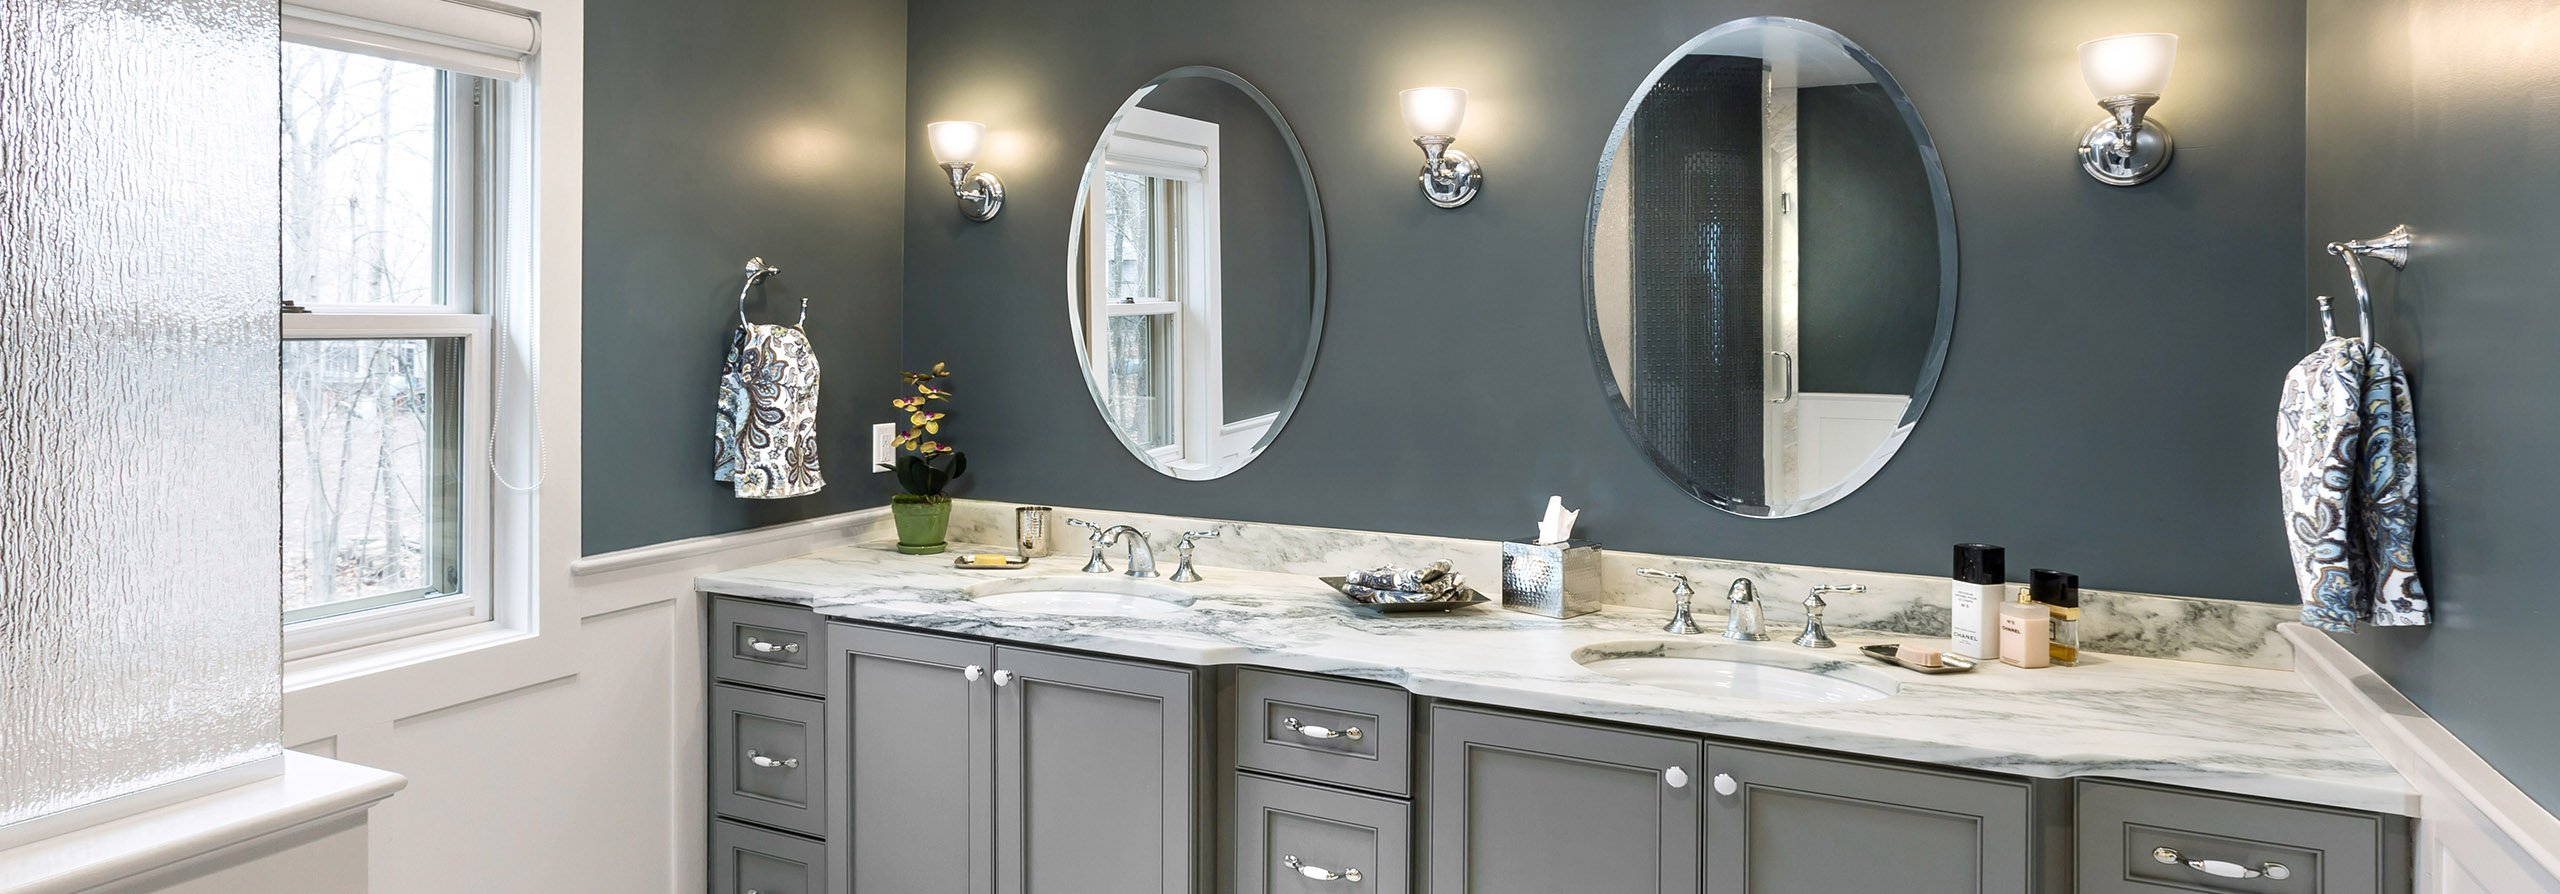 new berlin master bathroom vanity cabinets